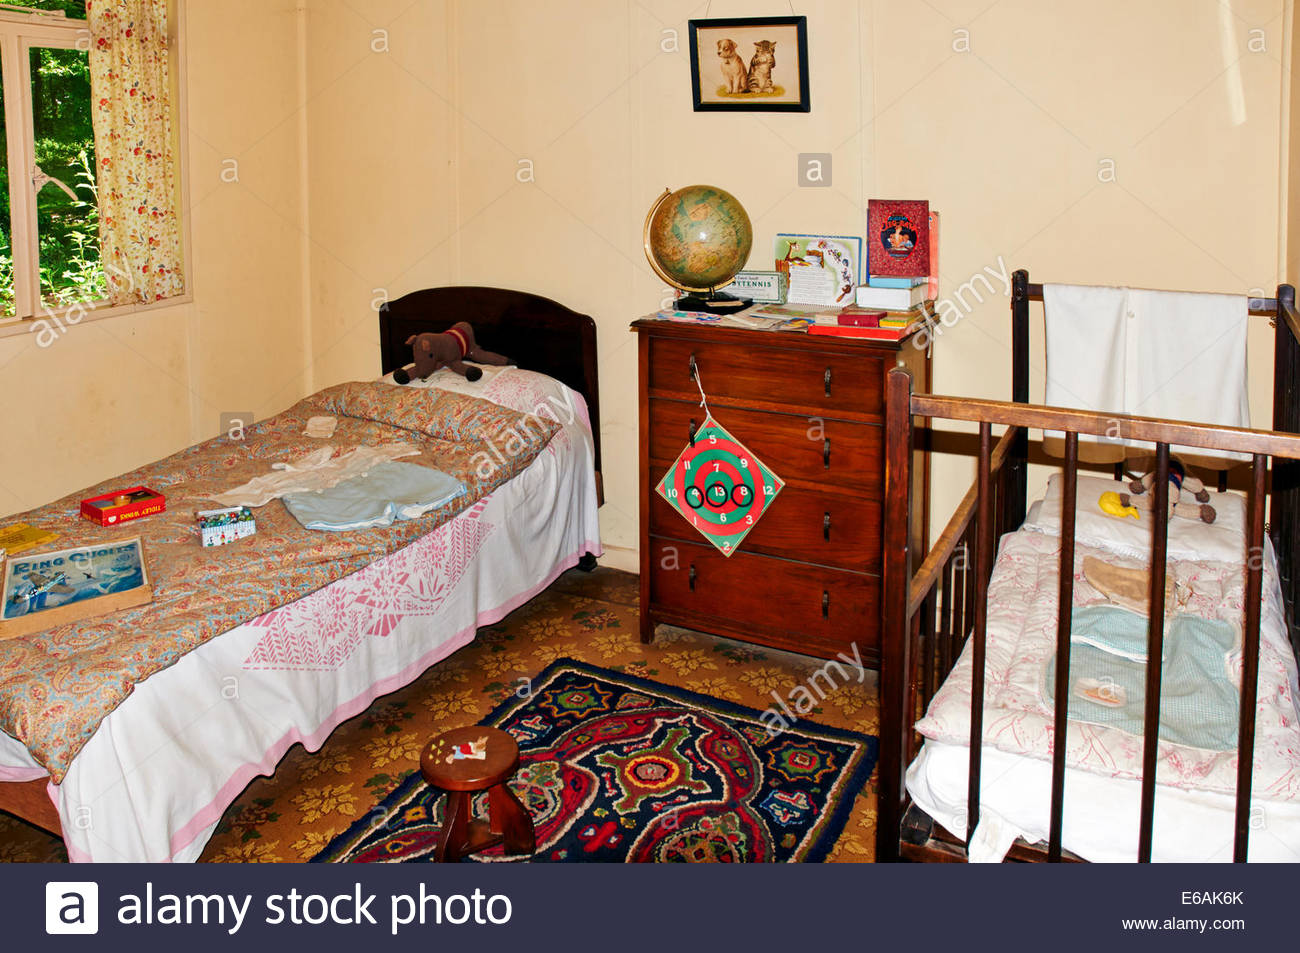 A 1950s Style Childrens Bedroom With A Single Bed And A